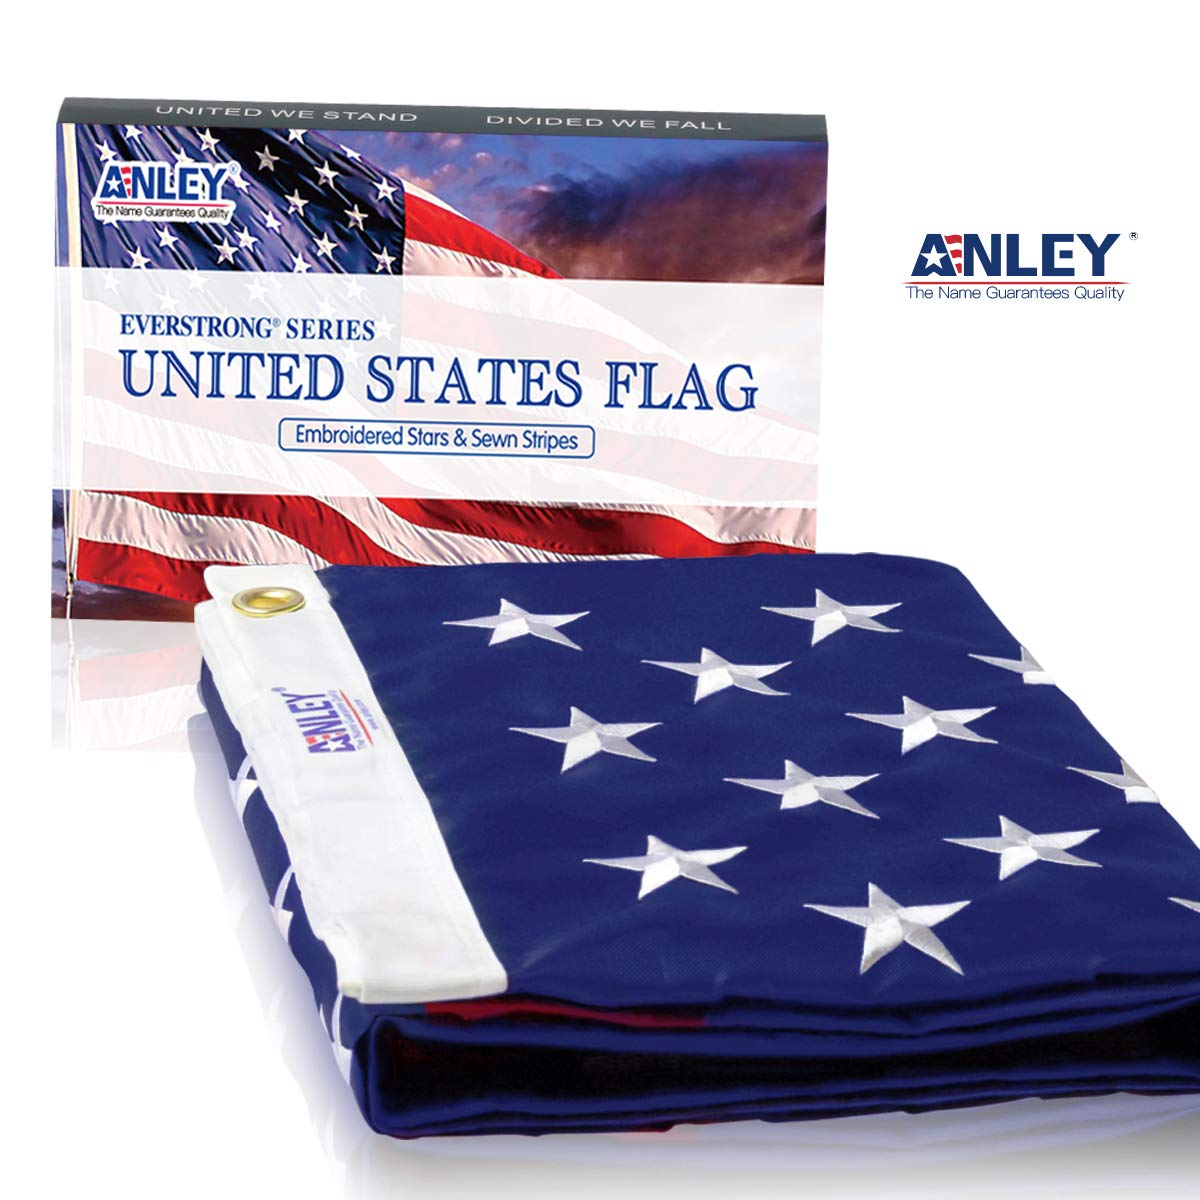 USA Banner Flags with Brass Grommets 5 X 8 Ft Embroidered Stars and Sewn Stripes Anley EverStrong Series American US Flag 5x8 Foot Heavy Duty Nylon 4 Rows of Lock Stitching